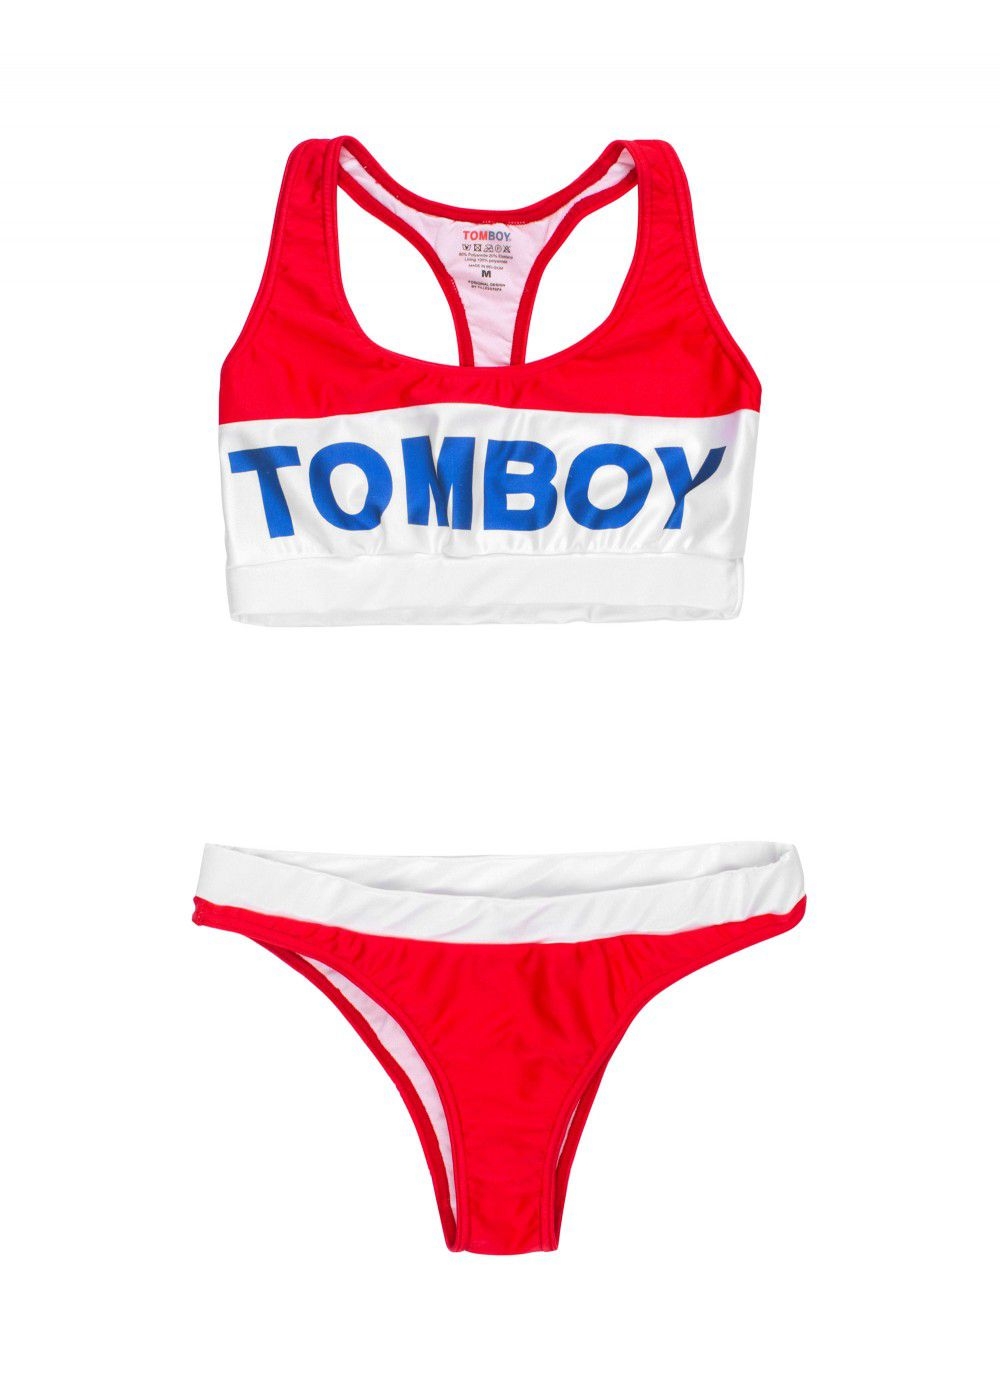 Tomboy Miami Red Bikini Set